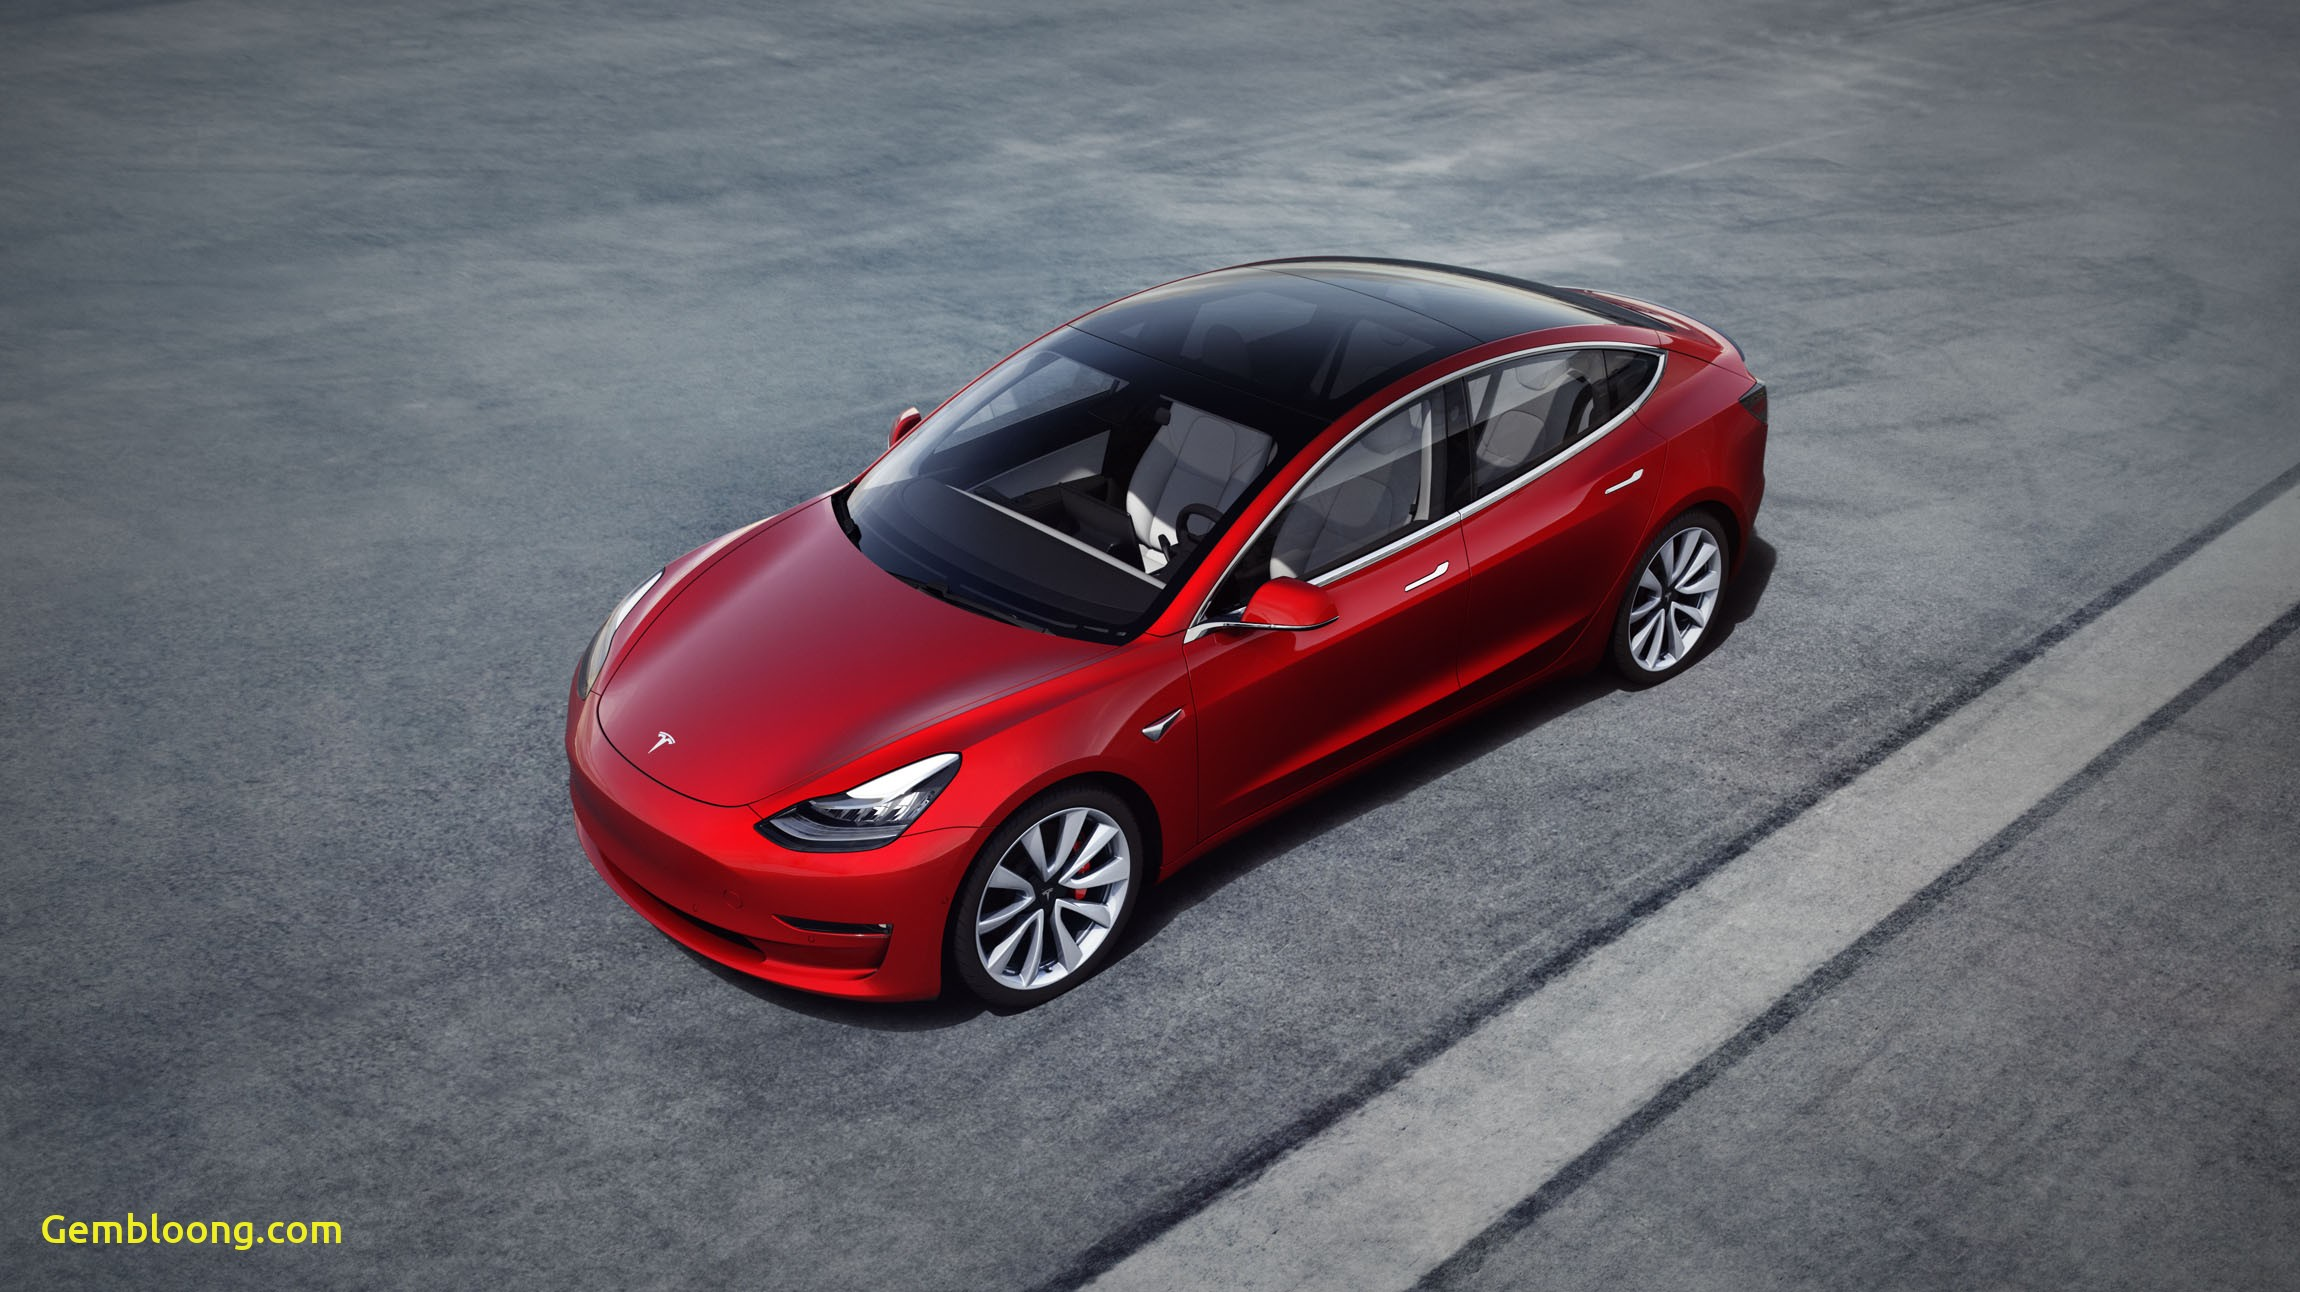 1 000 Dollar Cars for Sale Near Me Best Of the $35 000 Tesla Model 3 Has Arrived — but It Es with A